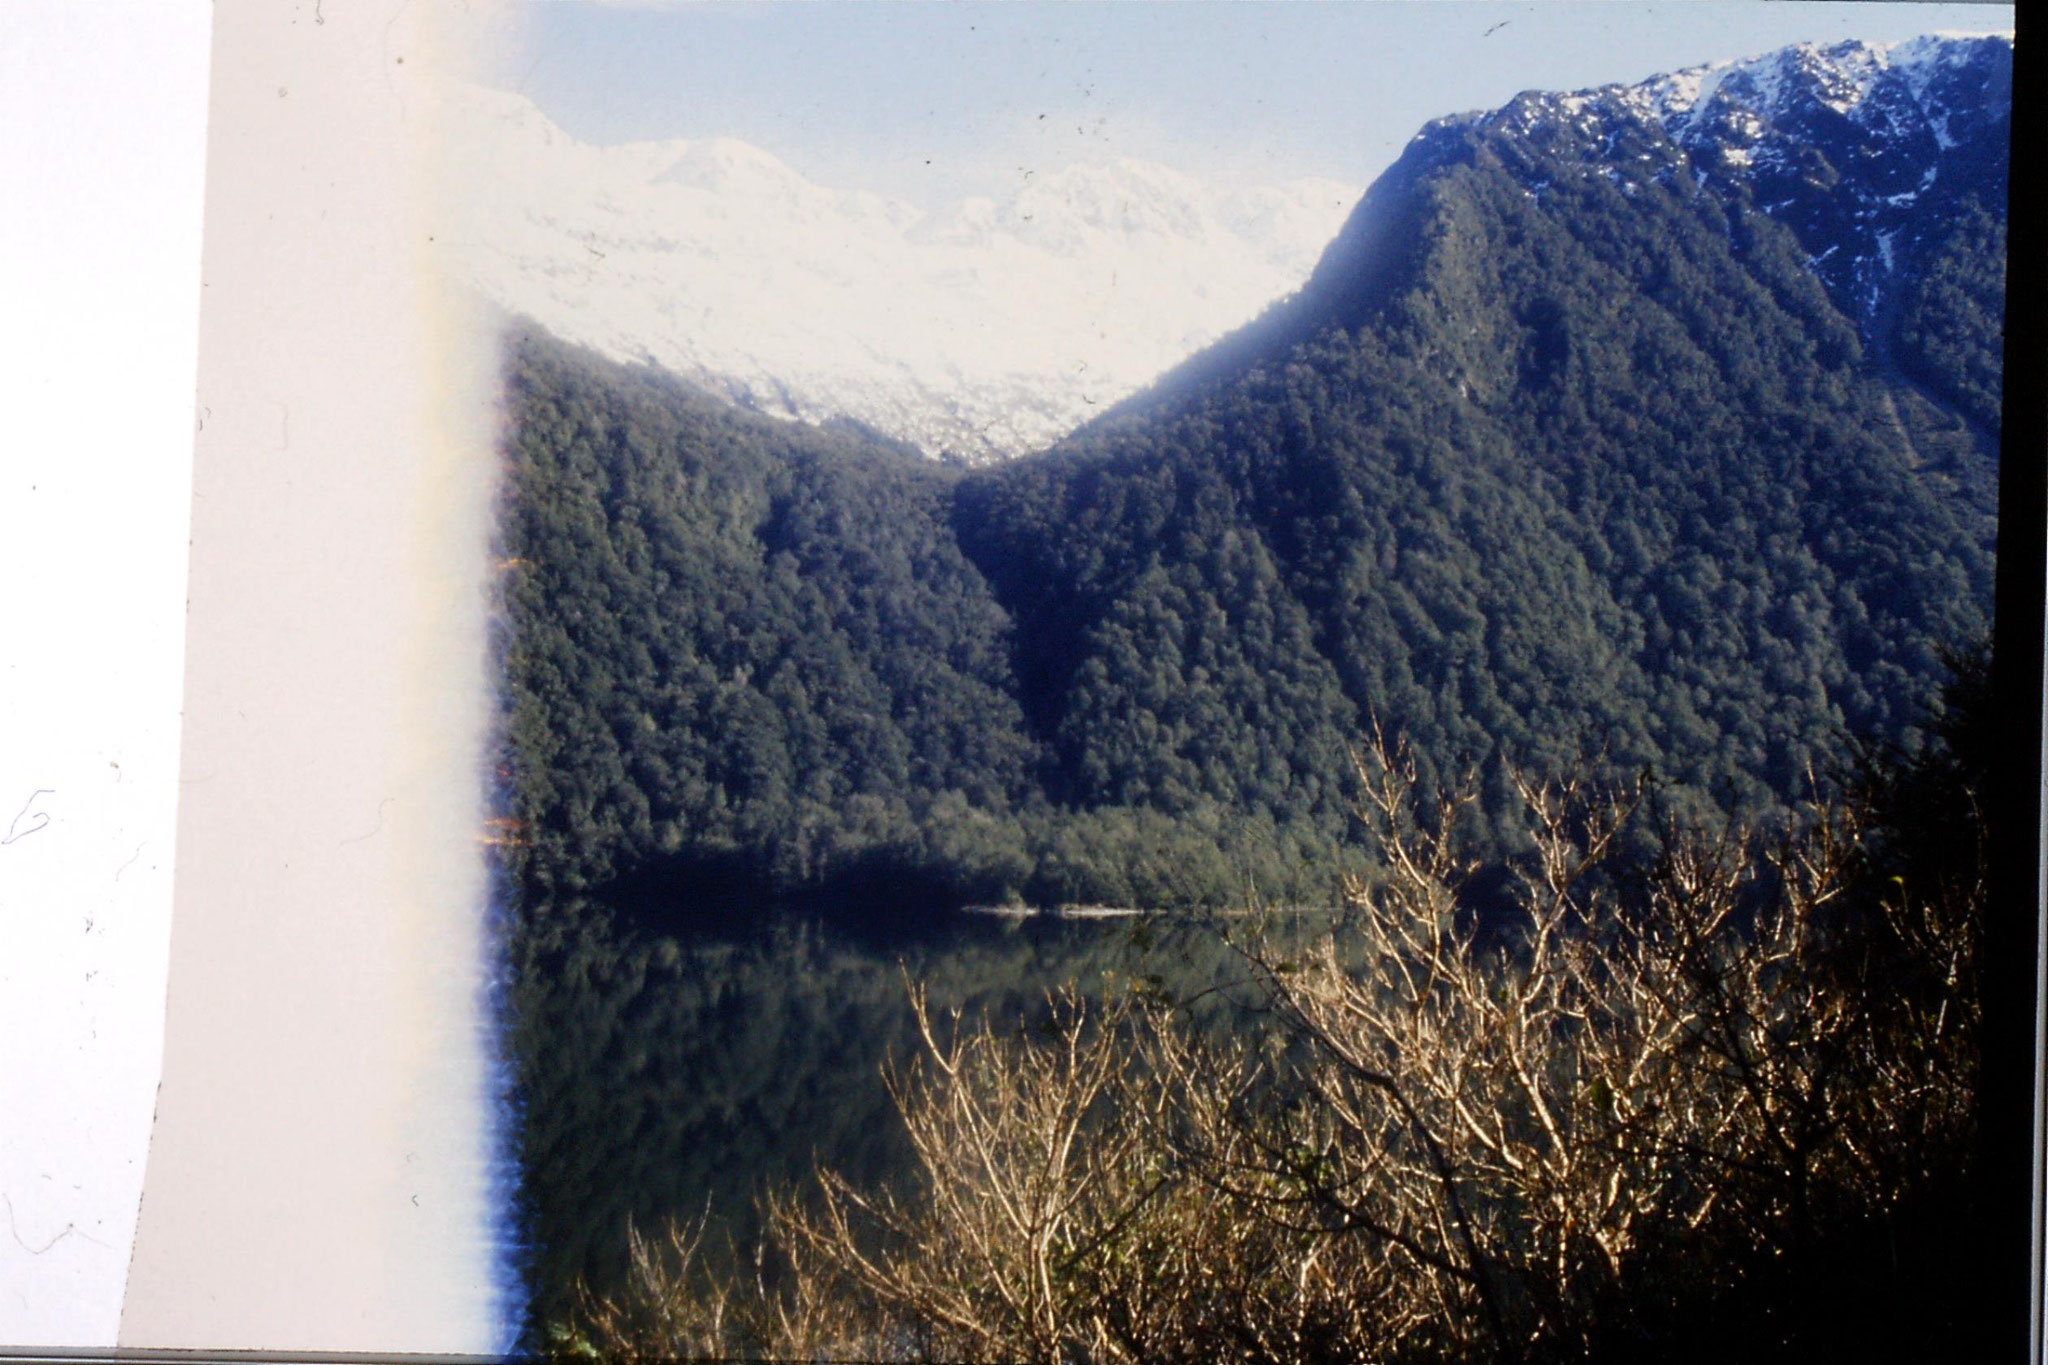 15/8/1990: 2: Lake Gunn from road